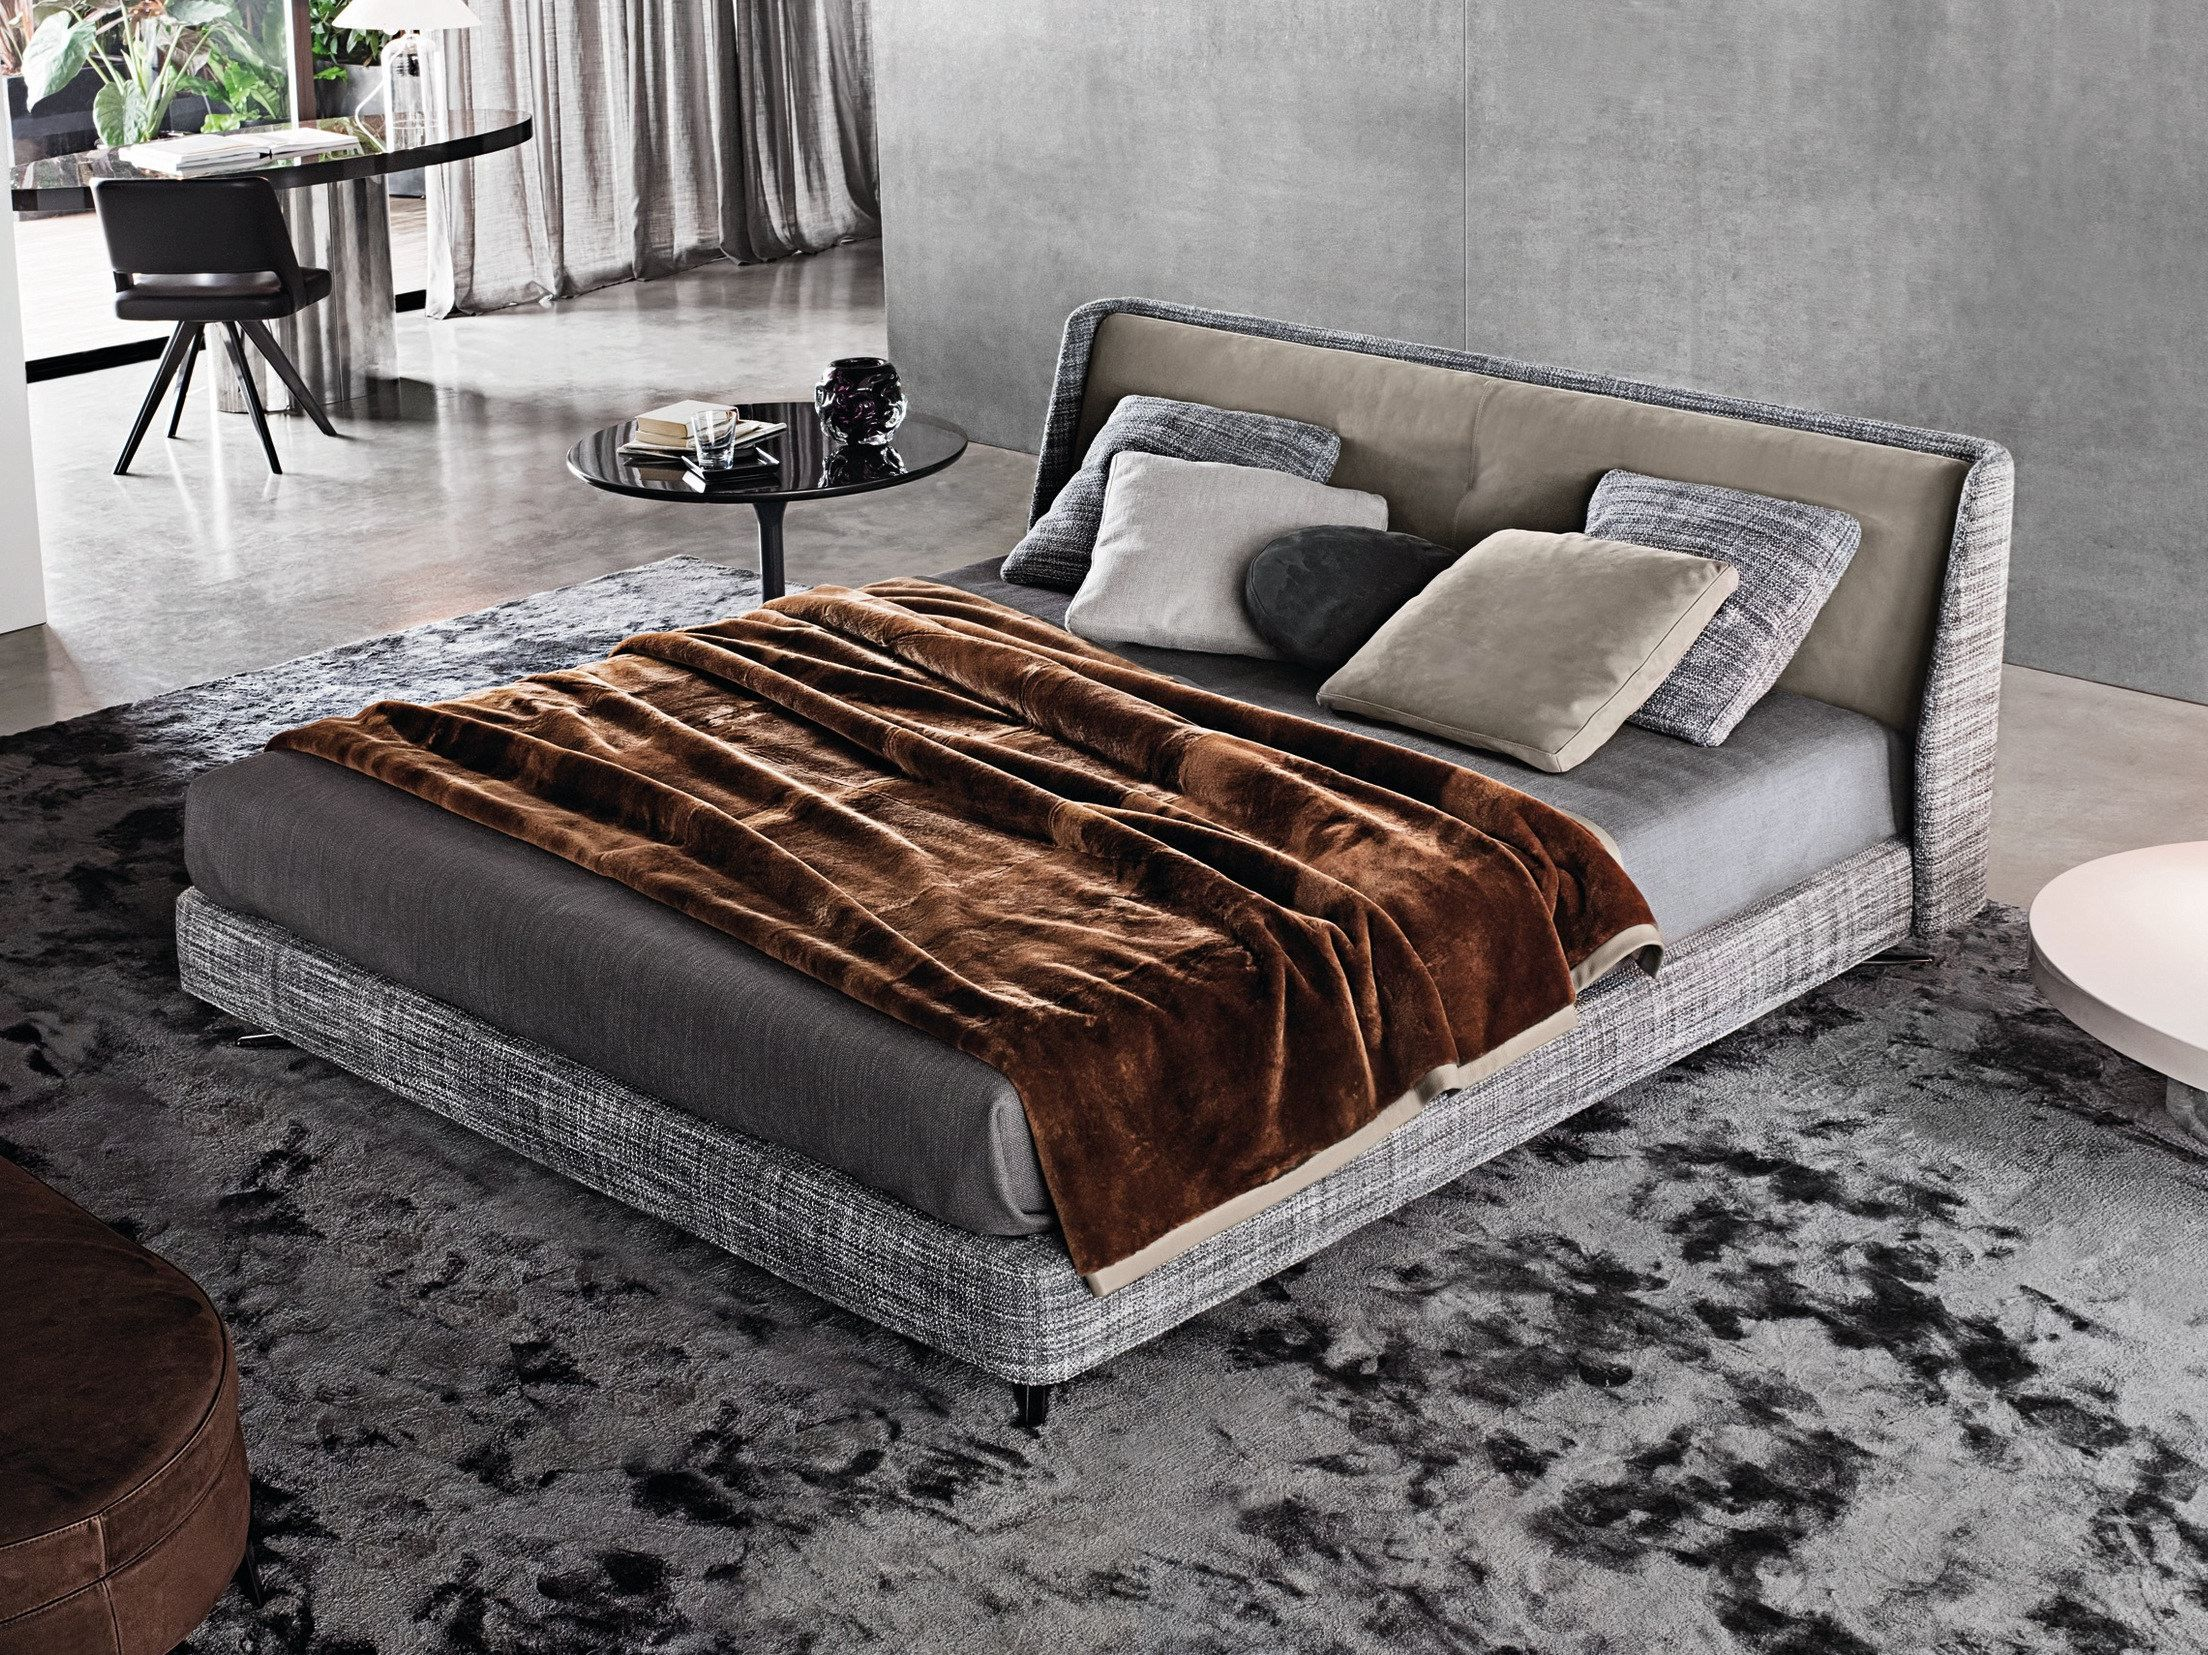 Double Bed Spencer Bed Spencer Series By Minotti - Design